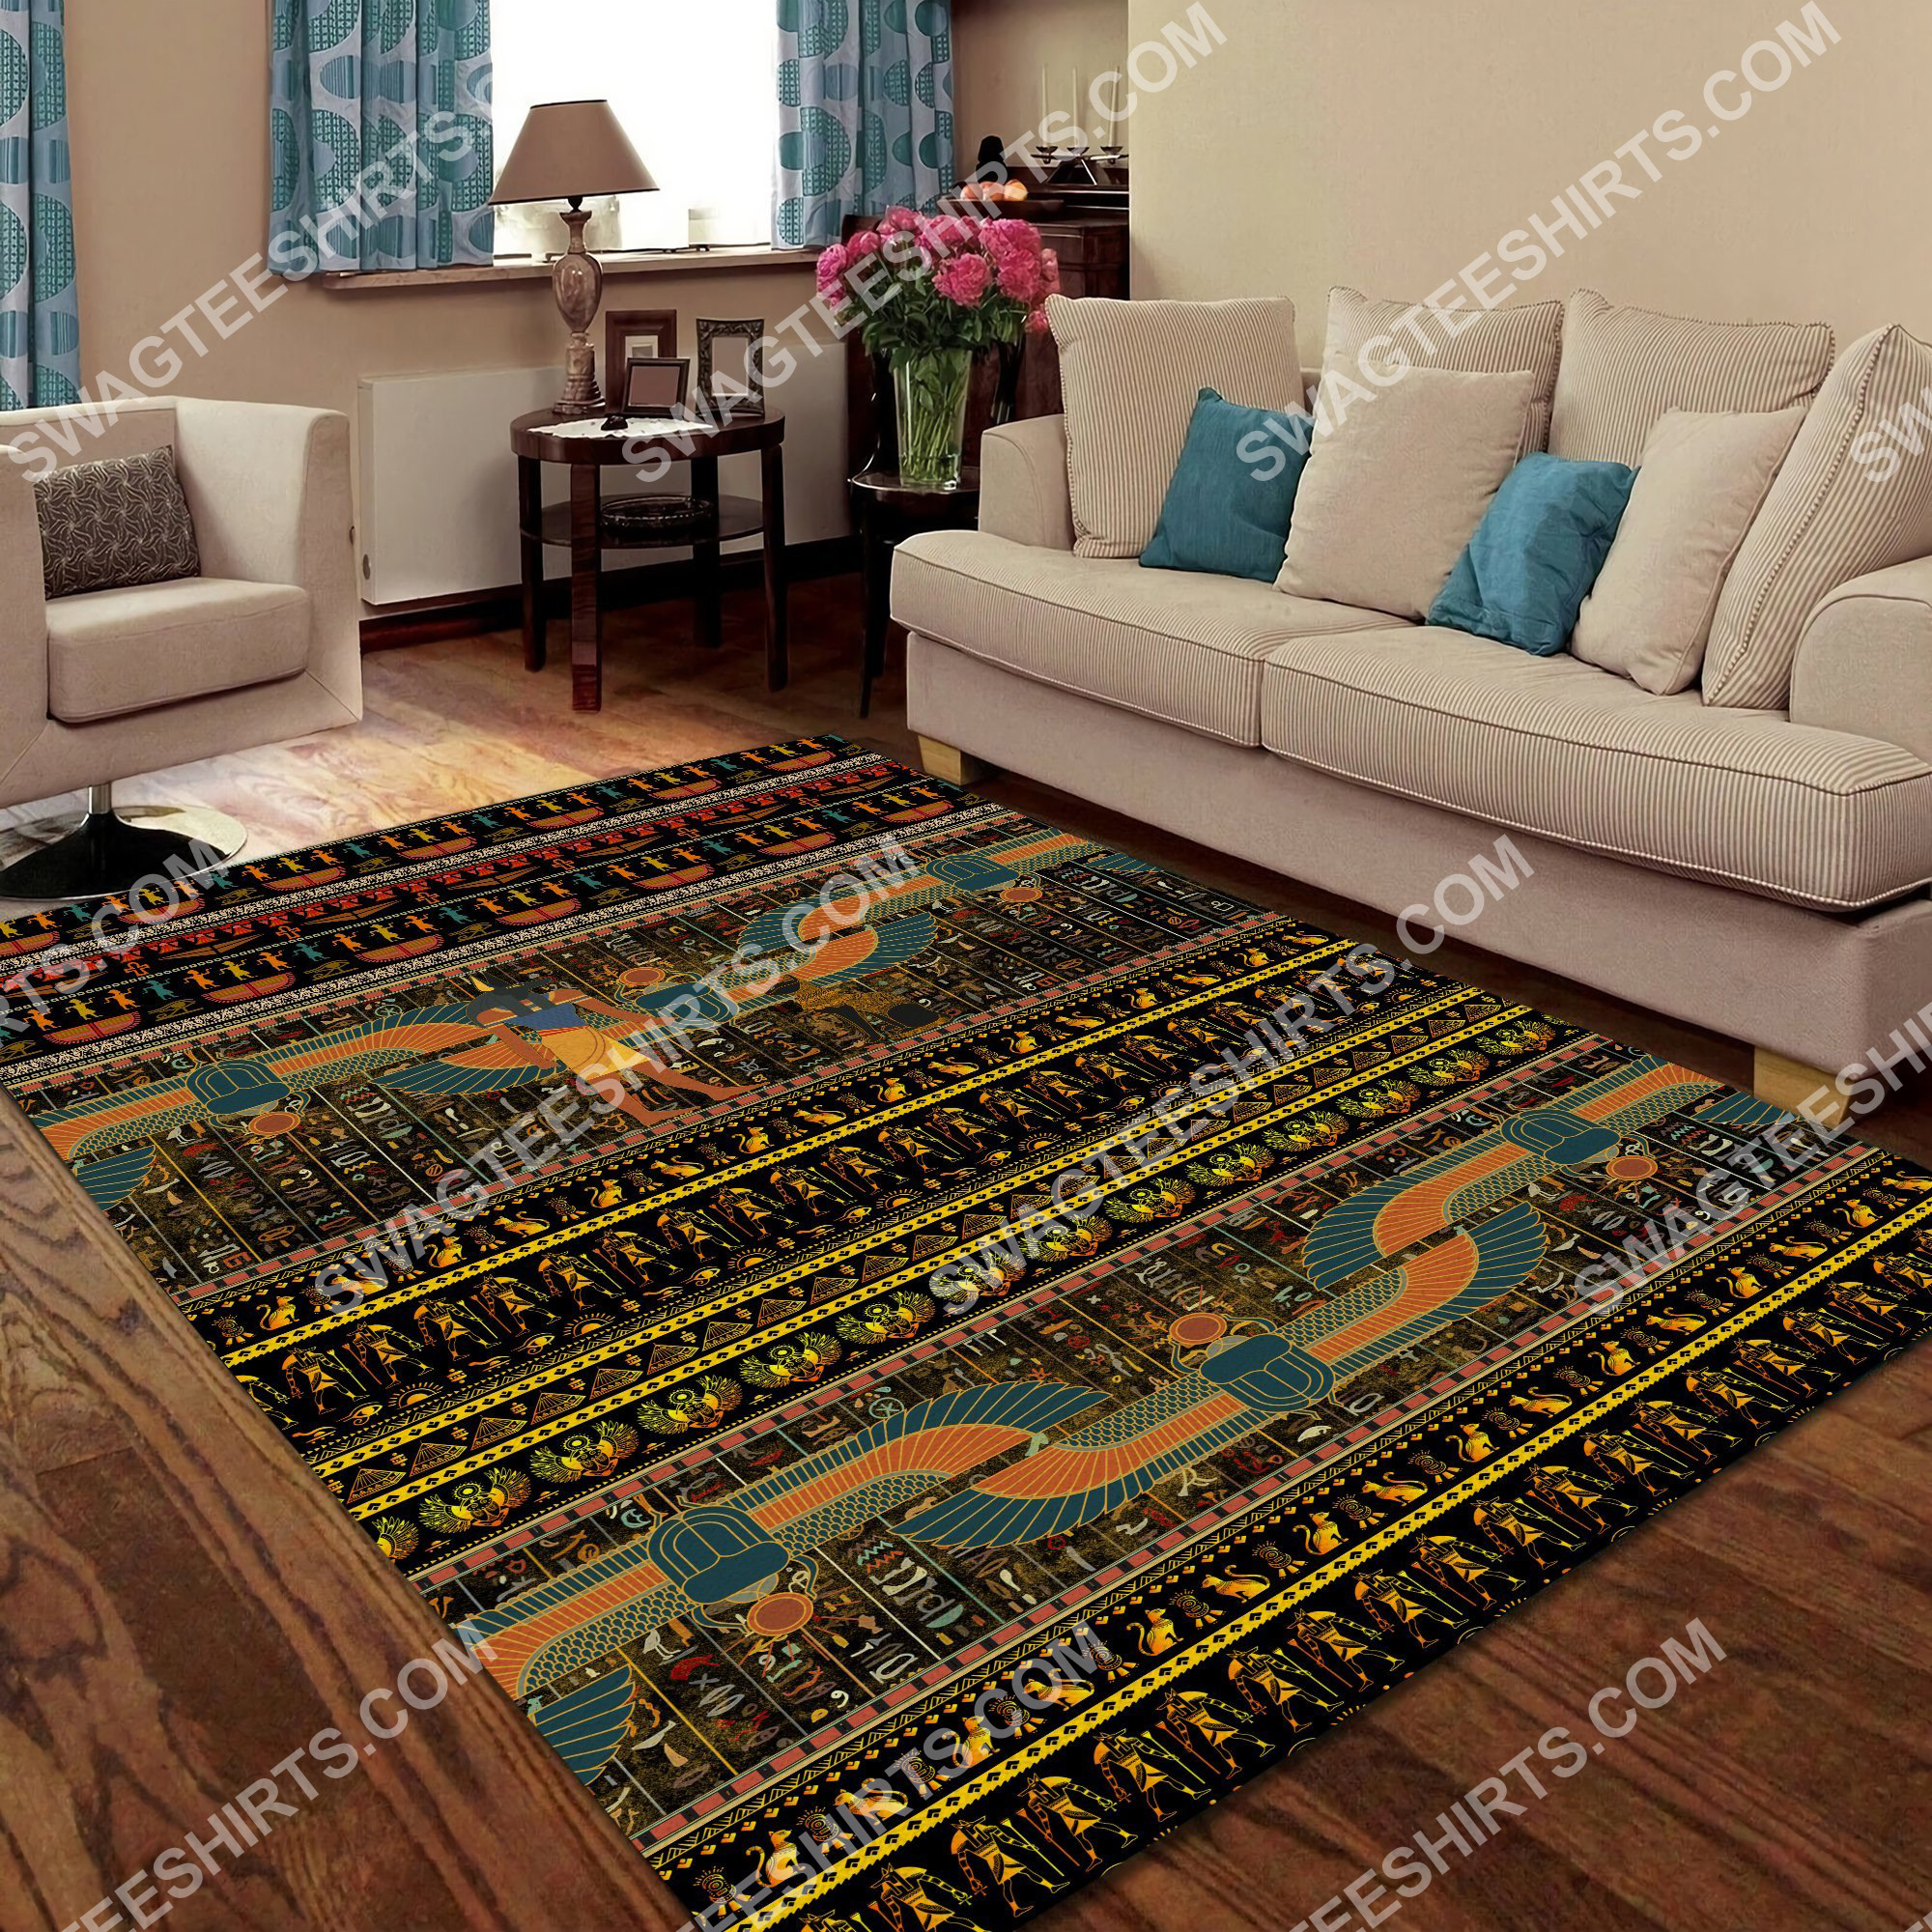 ancient egyptian culture all over printed rug 4(1) - Copy